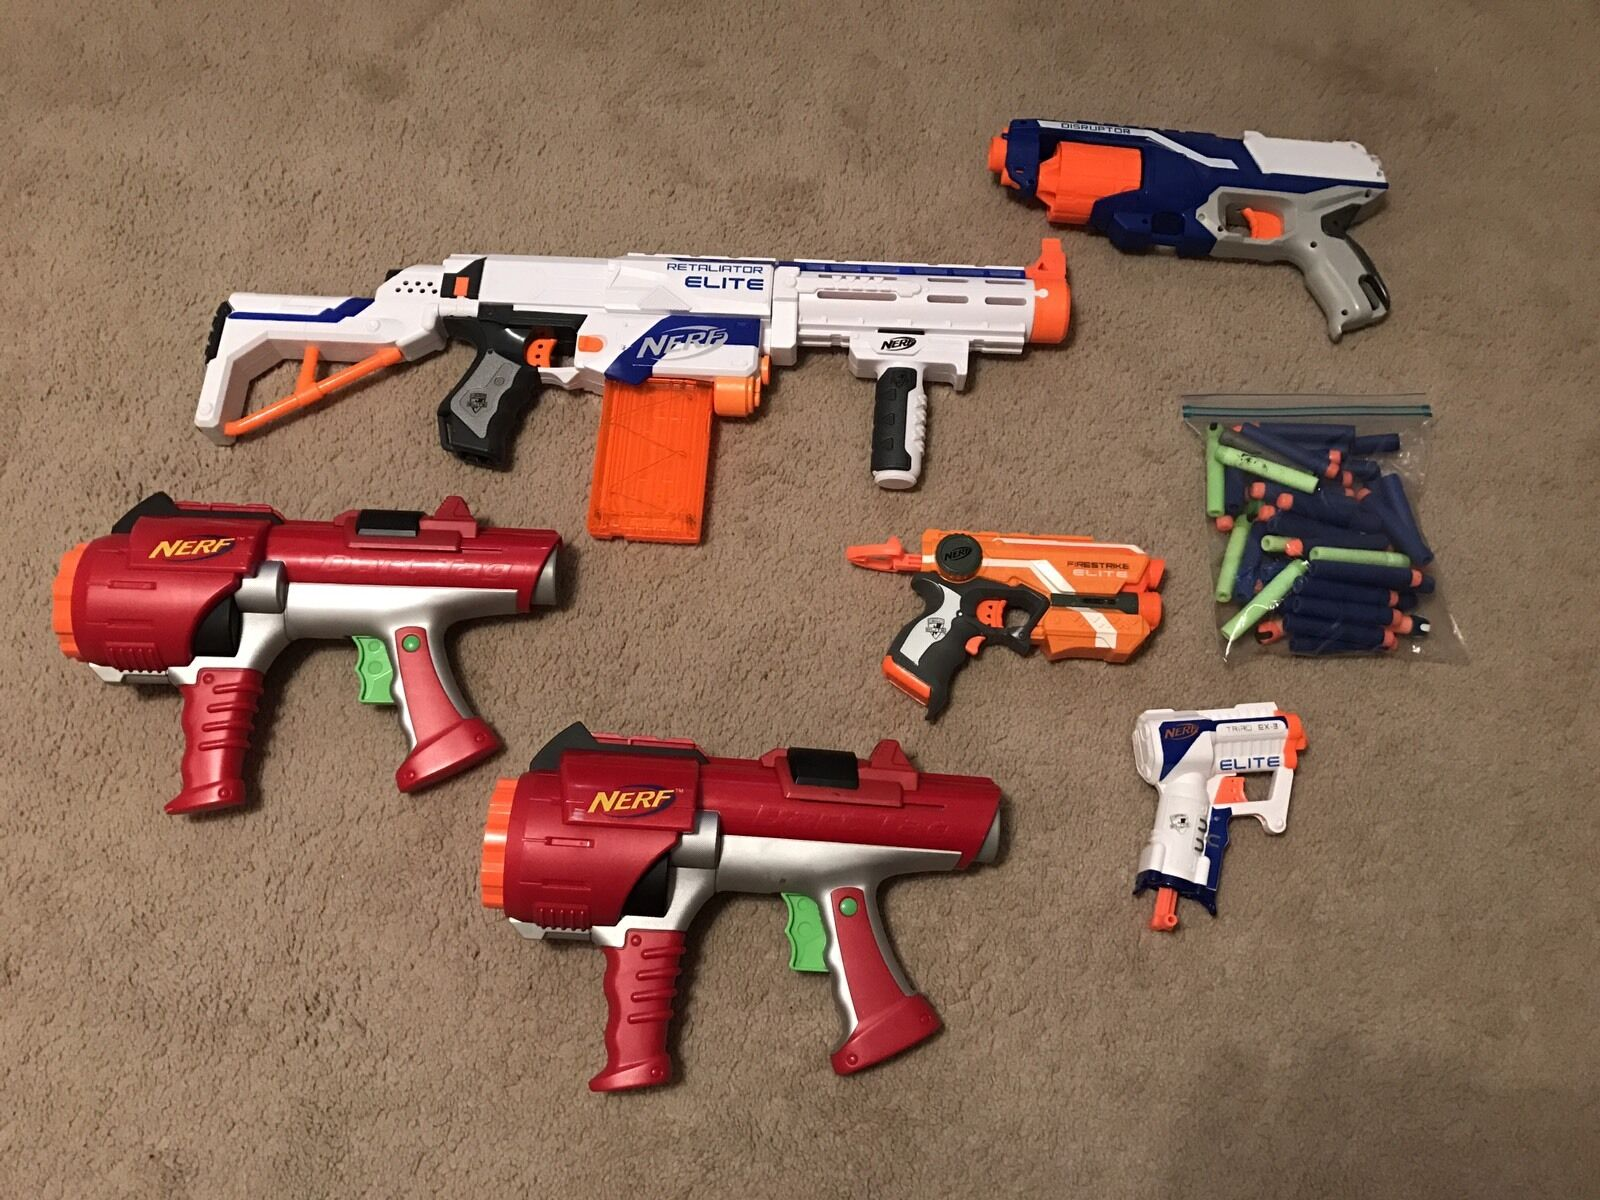 Nerf Gun Lot Retaliator Elite Elite Elite 2 Dart Tags Firestrike Elite Triao Ex-3 Disrupter 4df178